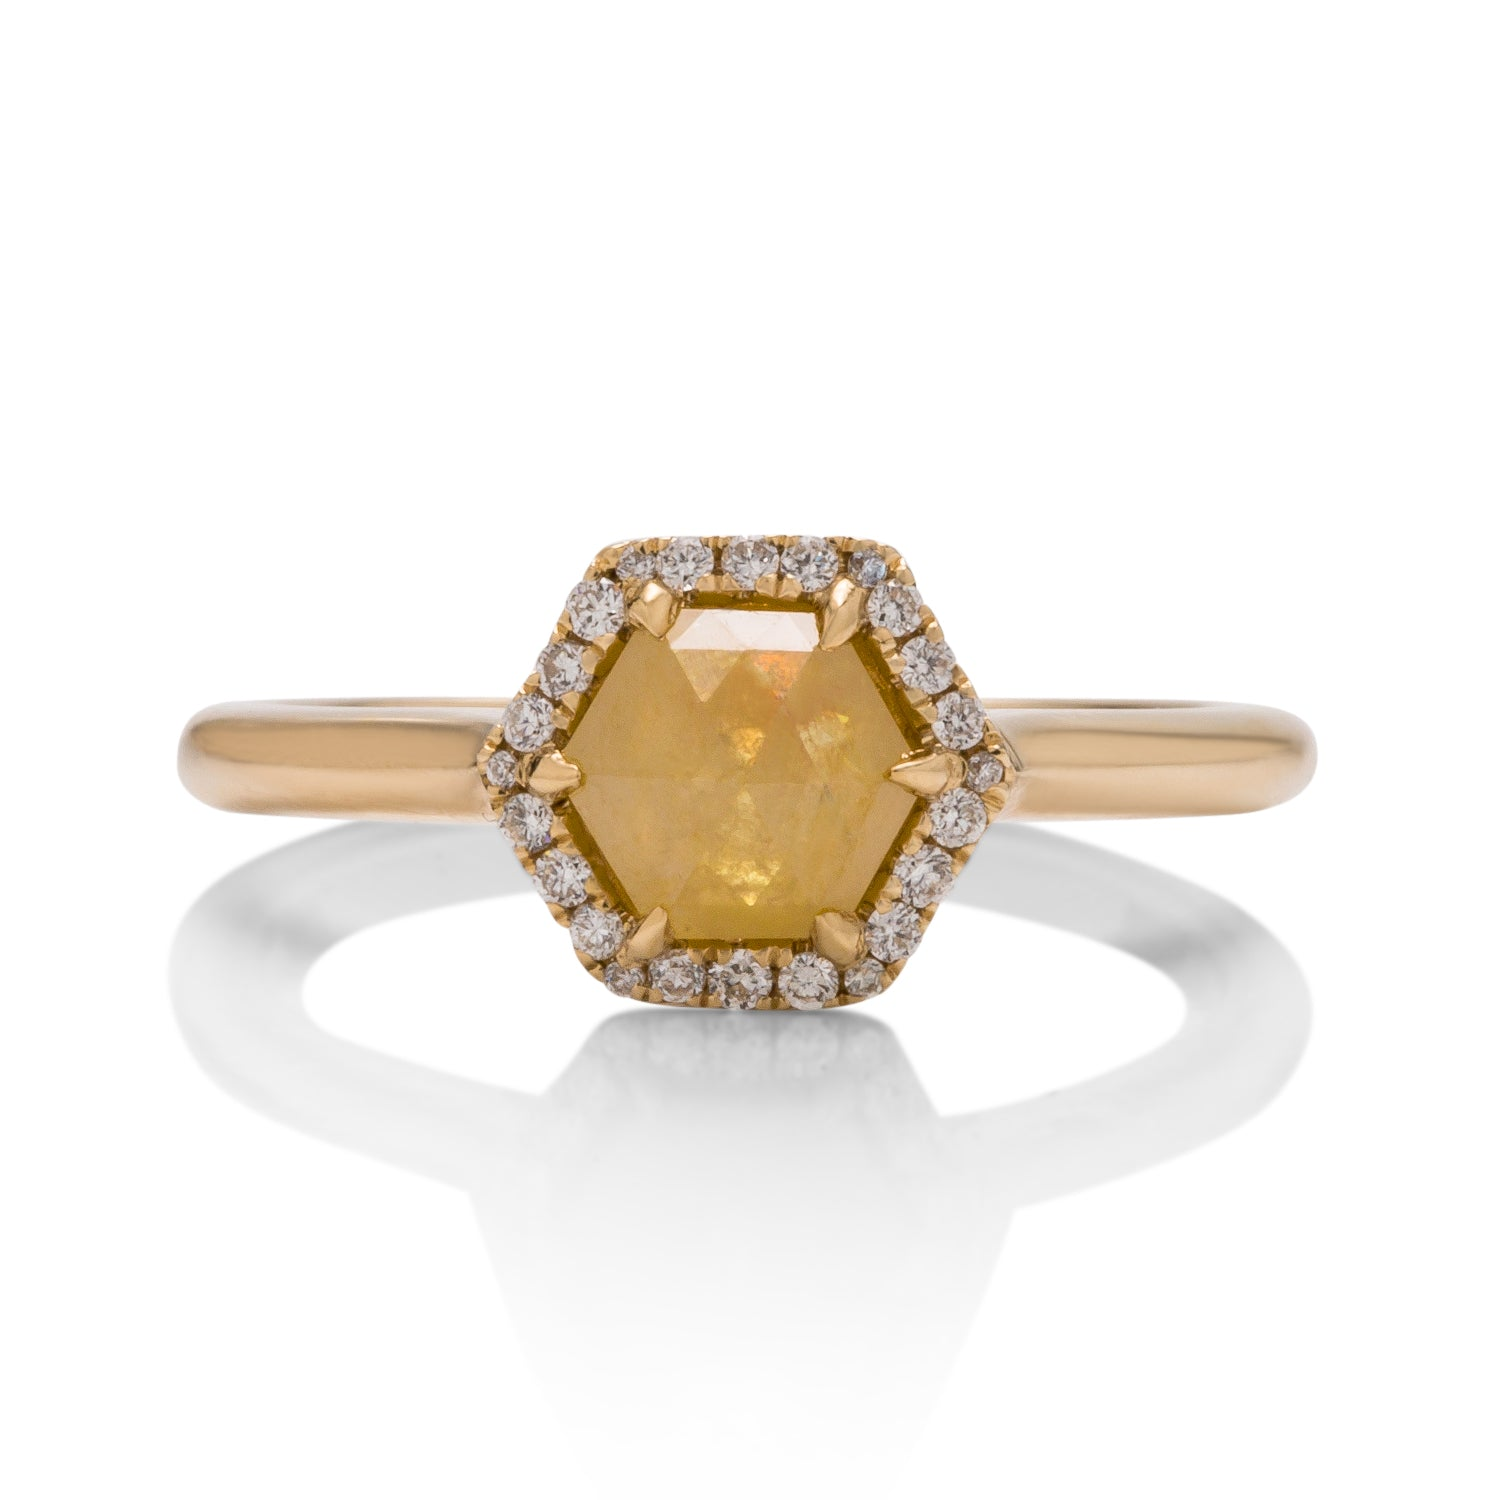 Rough Hexagonal Yellow Diamond Ring - Charles Koll Jewellers